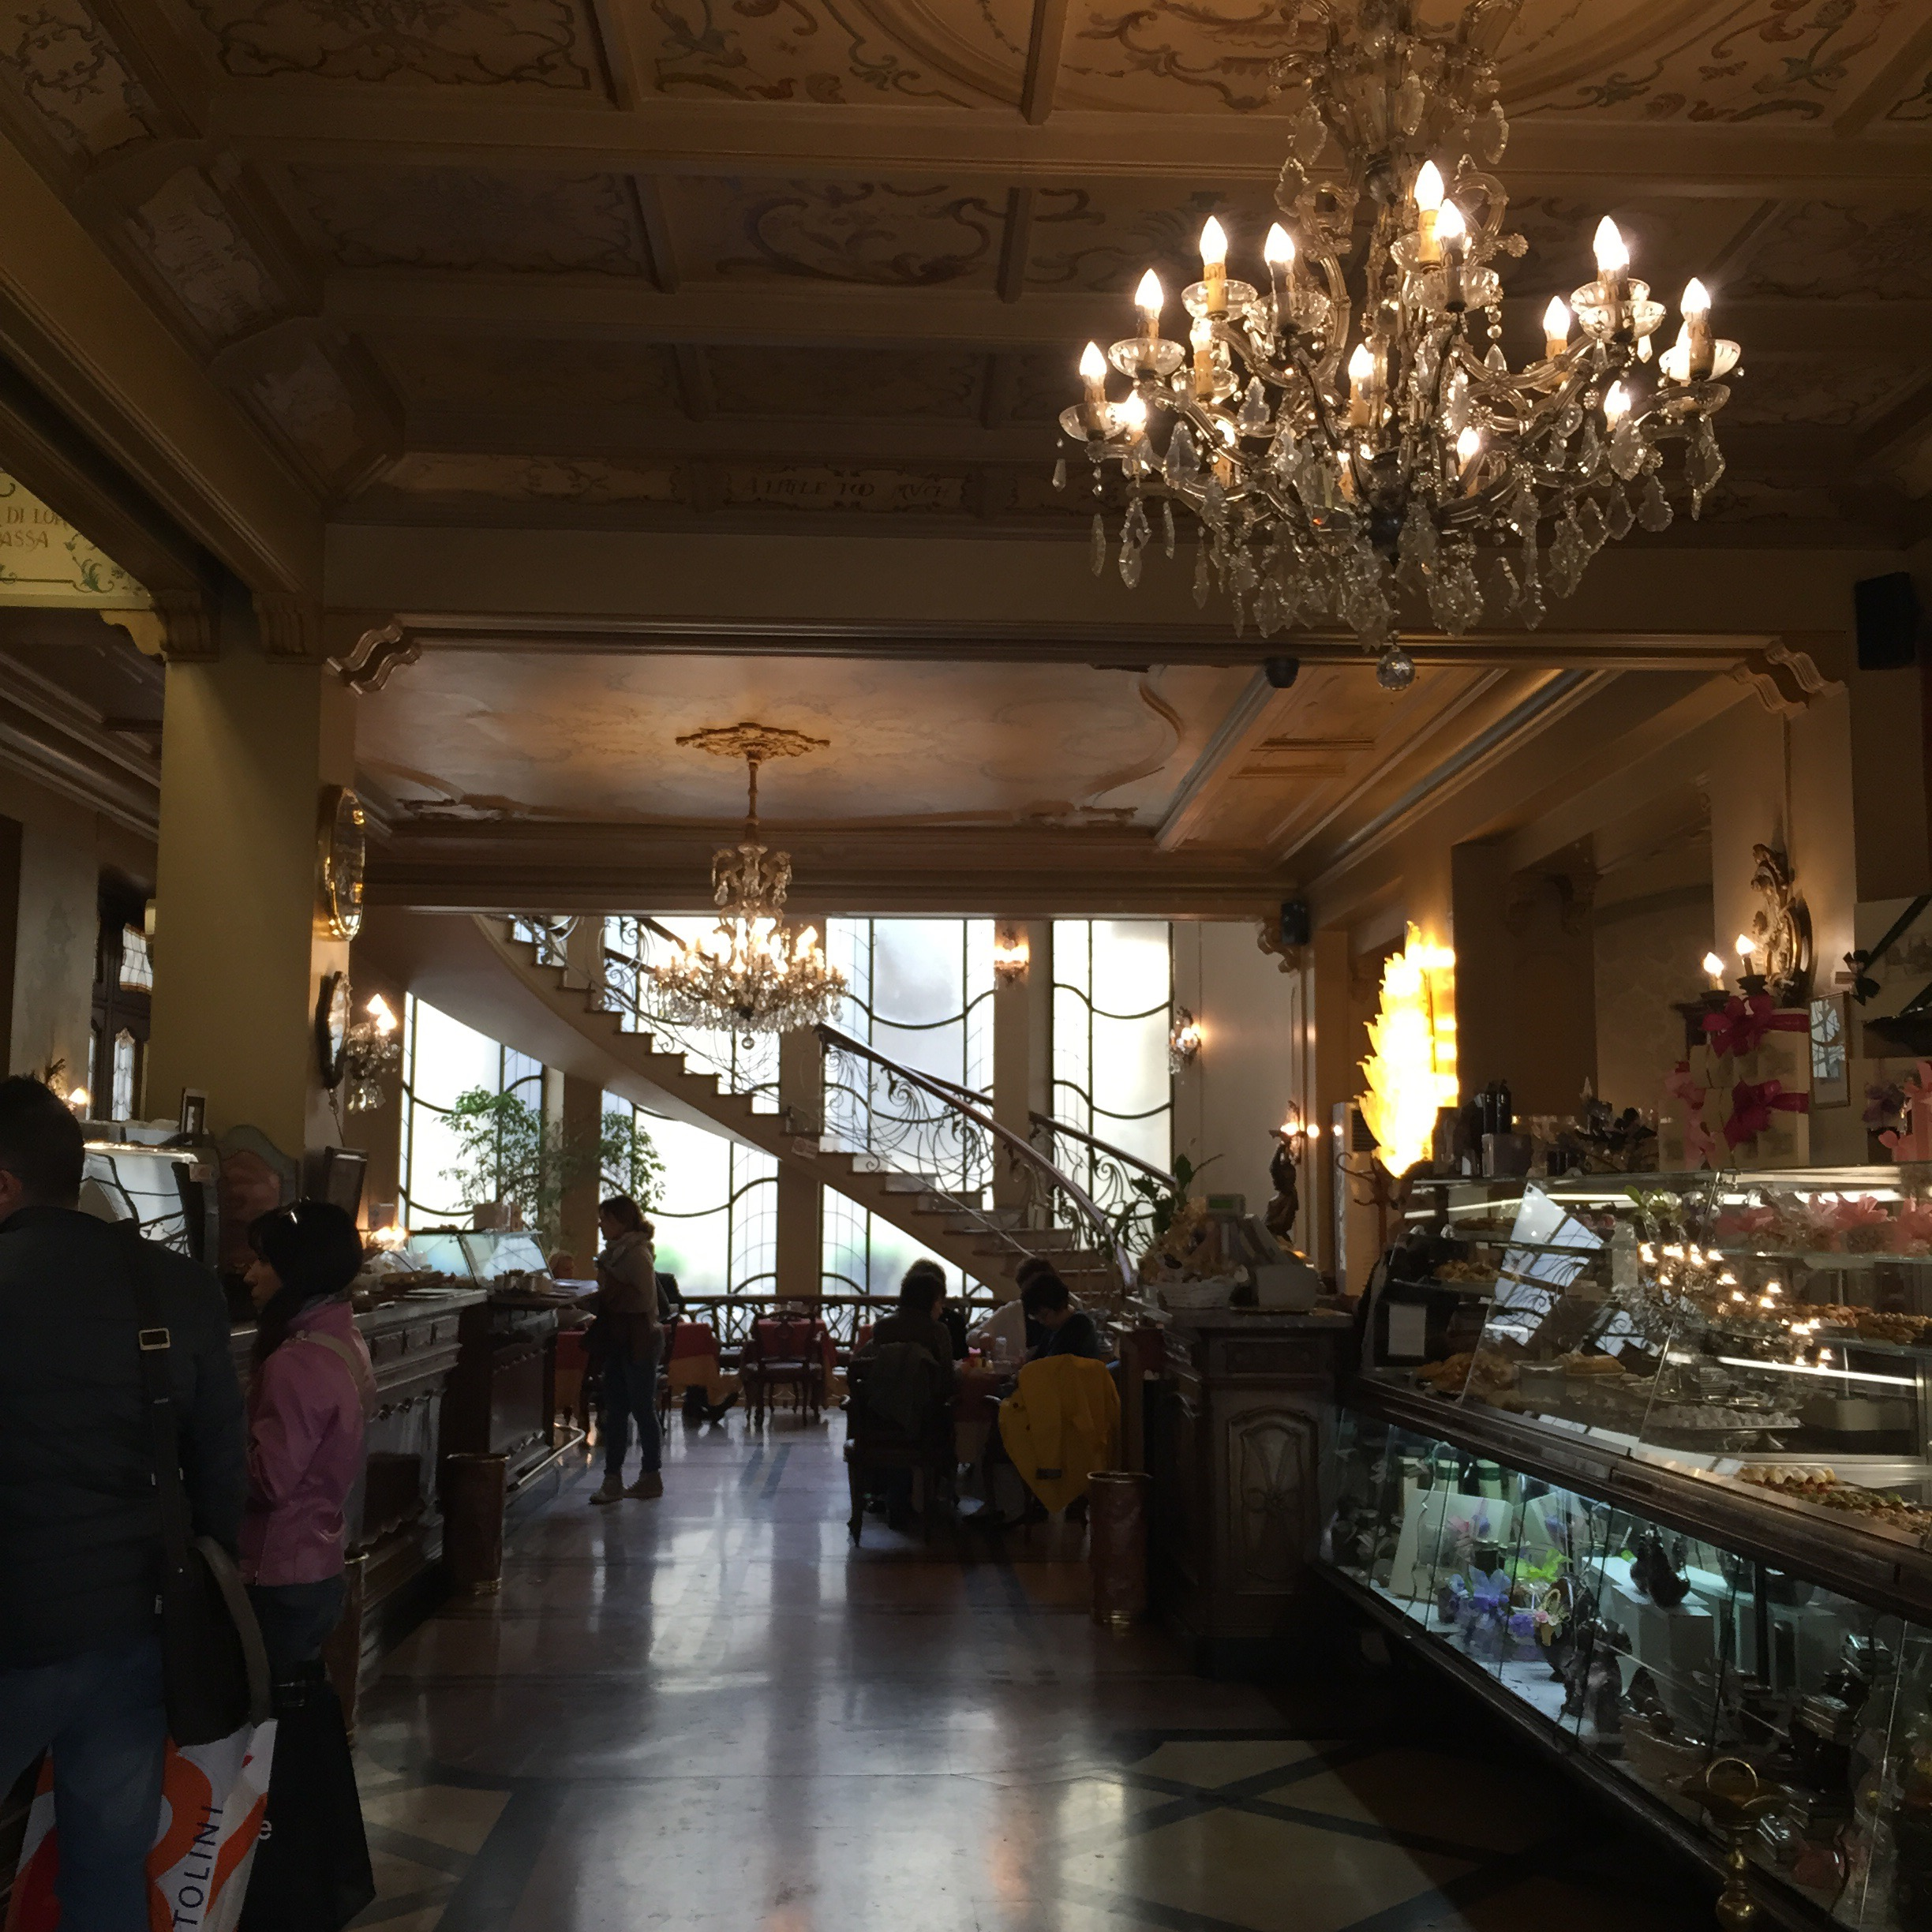 The historic Caffe Torino is simply stunning